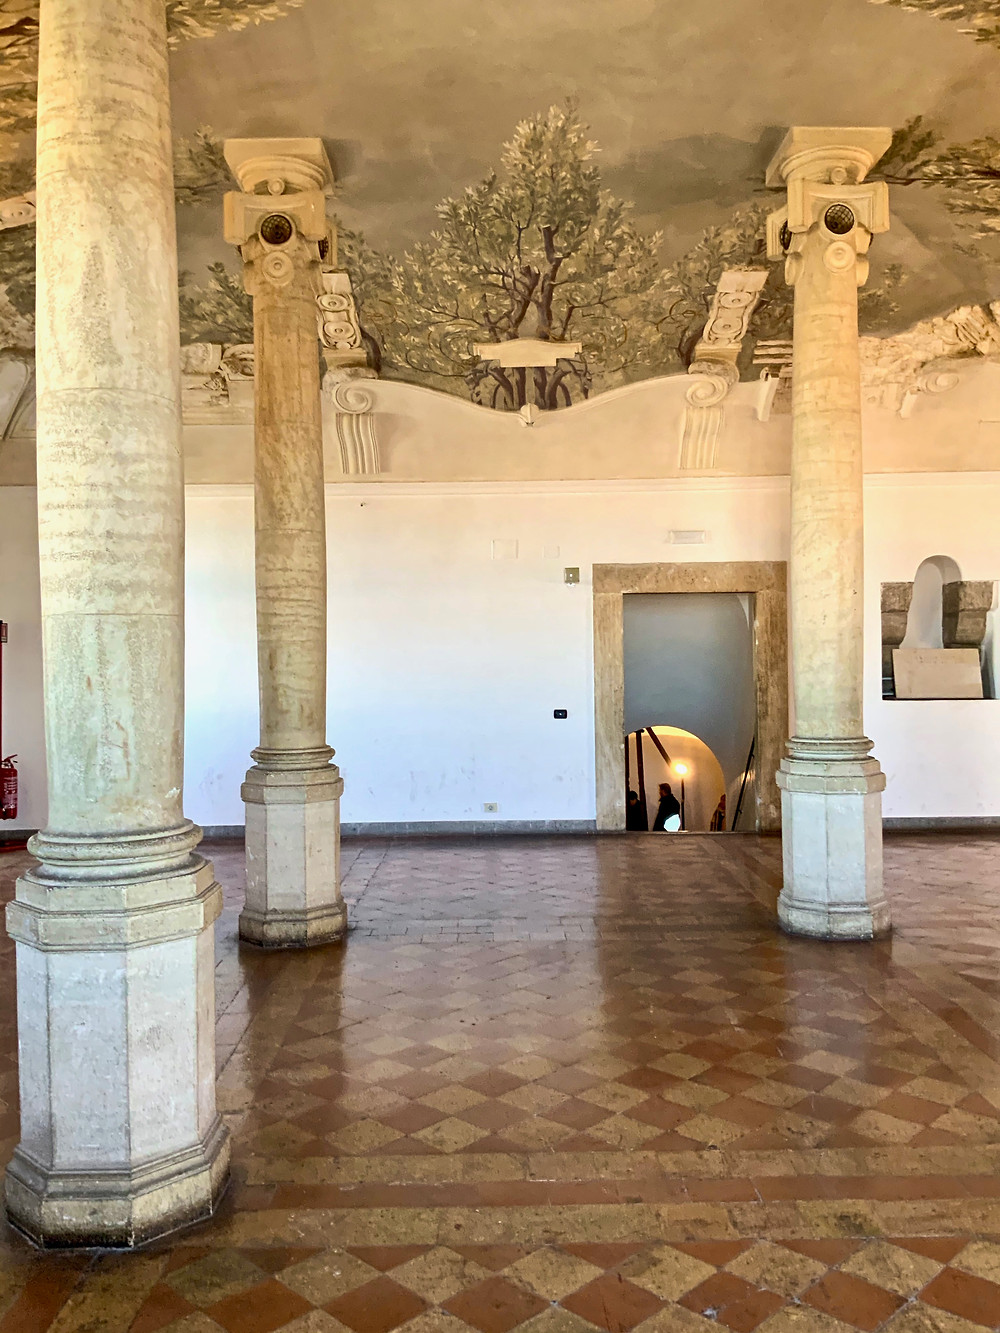 Hall of Columns in the Castle Sant'Angleo